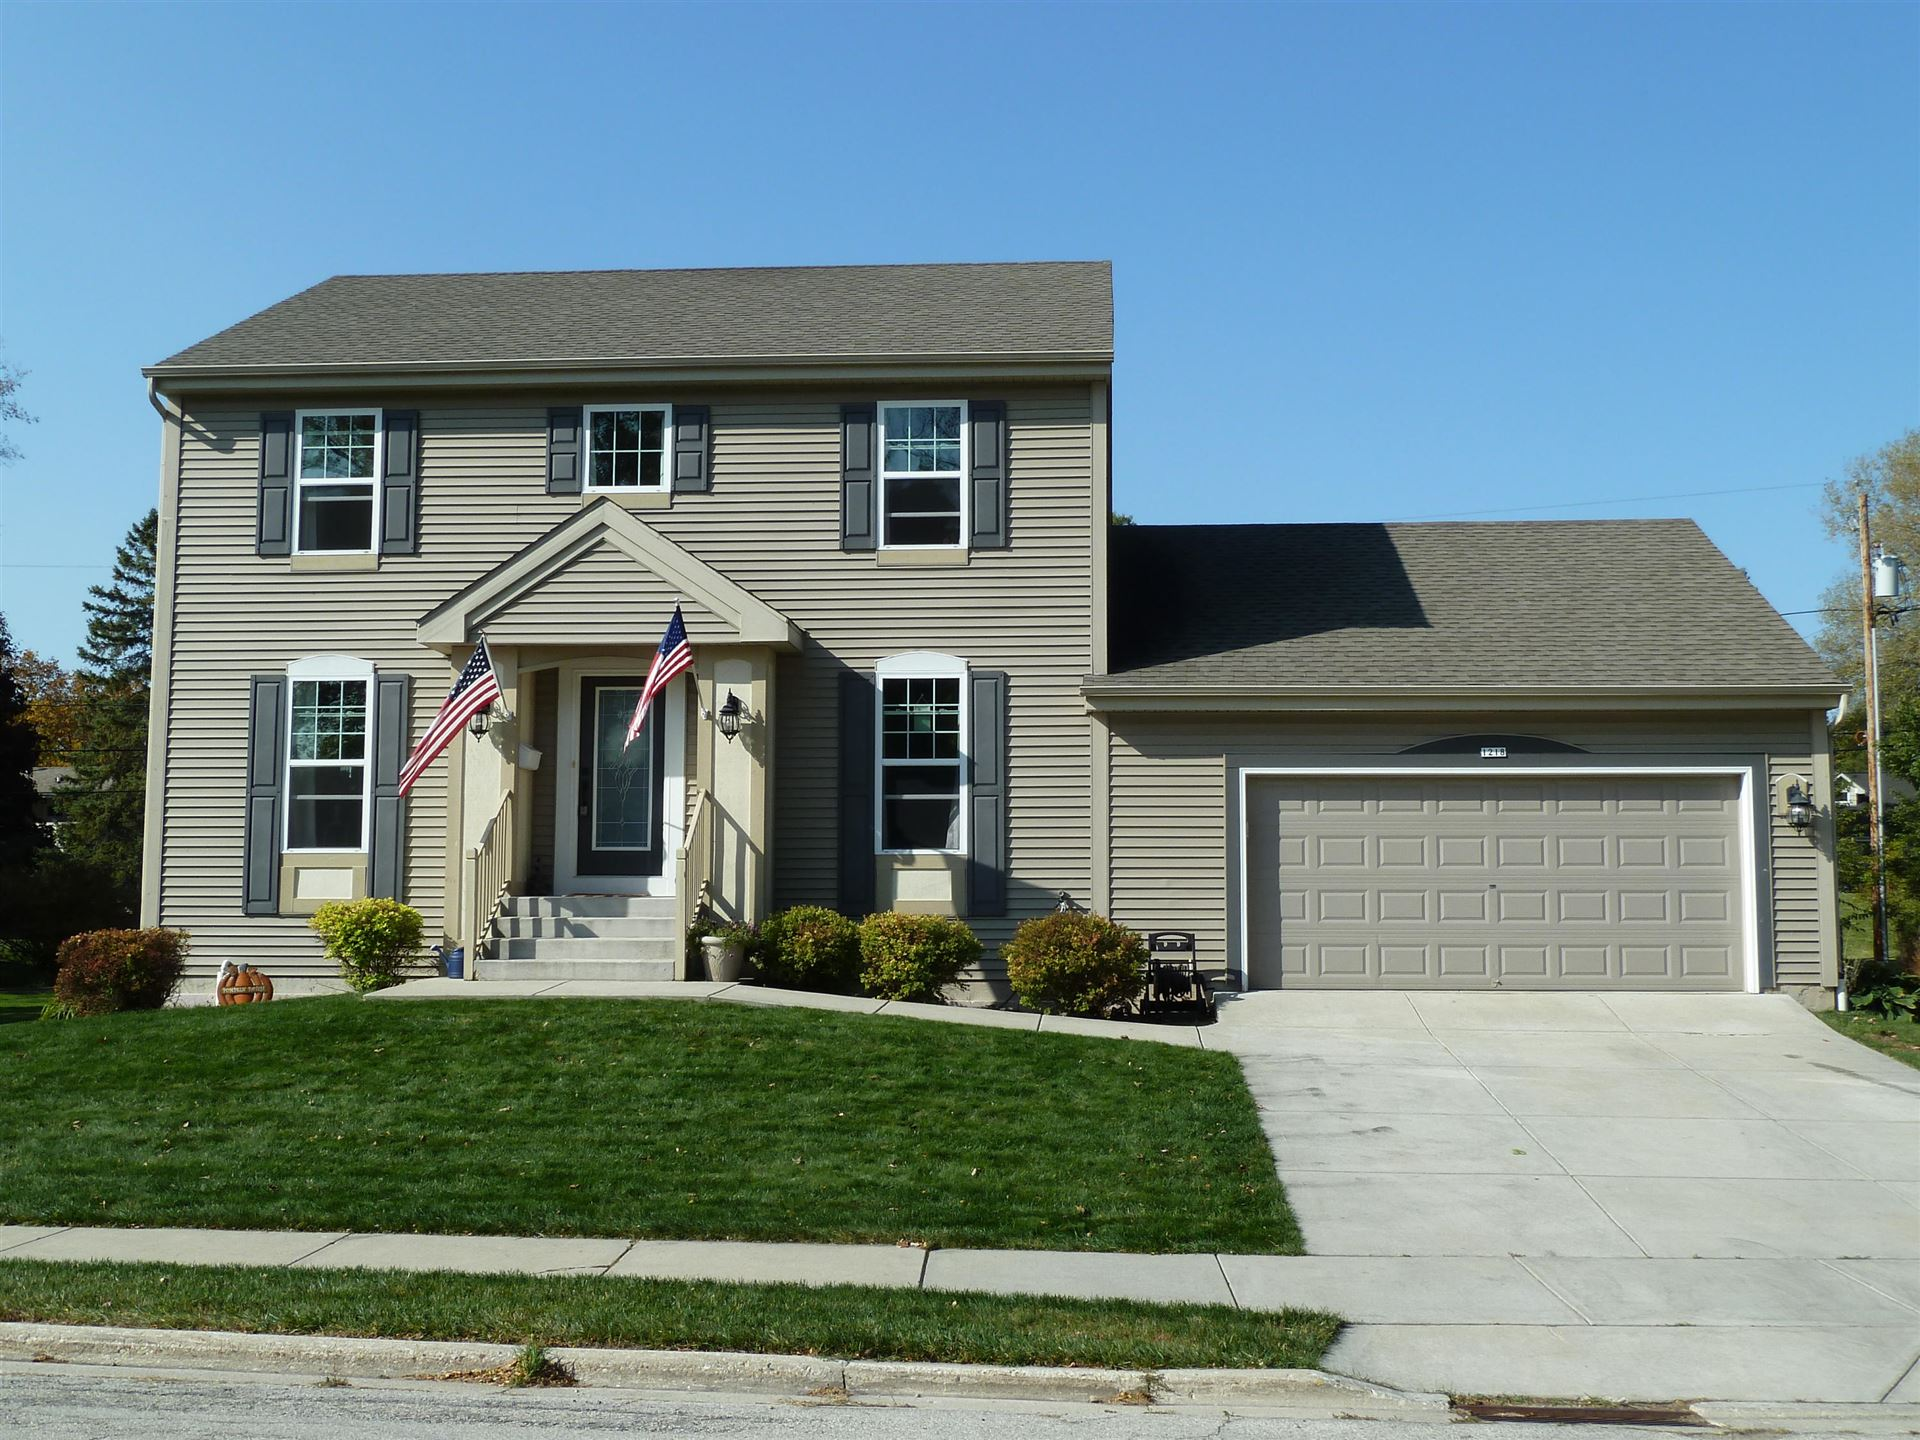 1218 N 11th Ave, West Bend, WI 53090 - #: 1714227